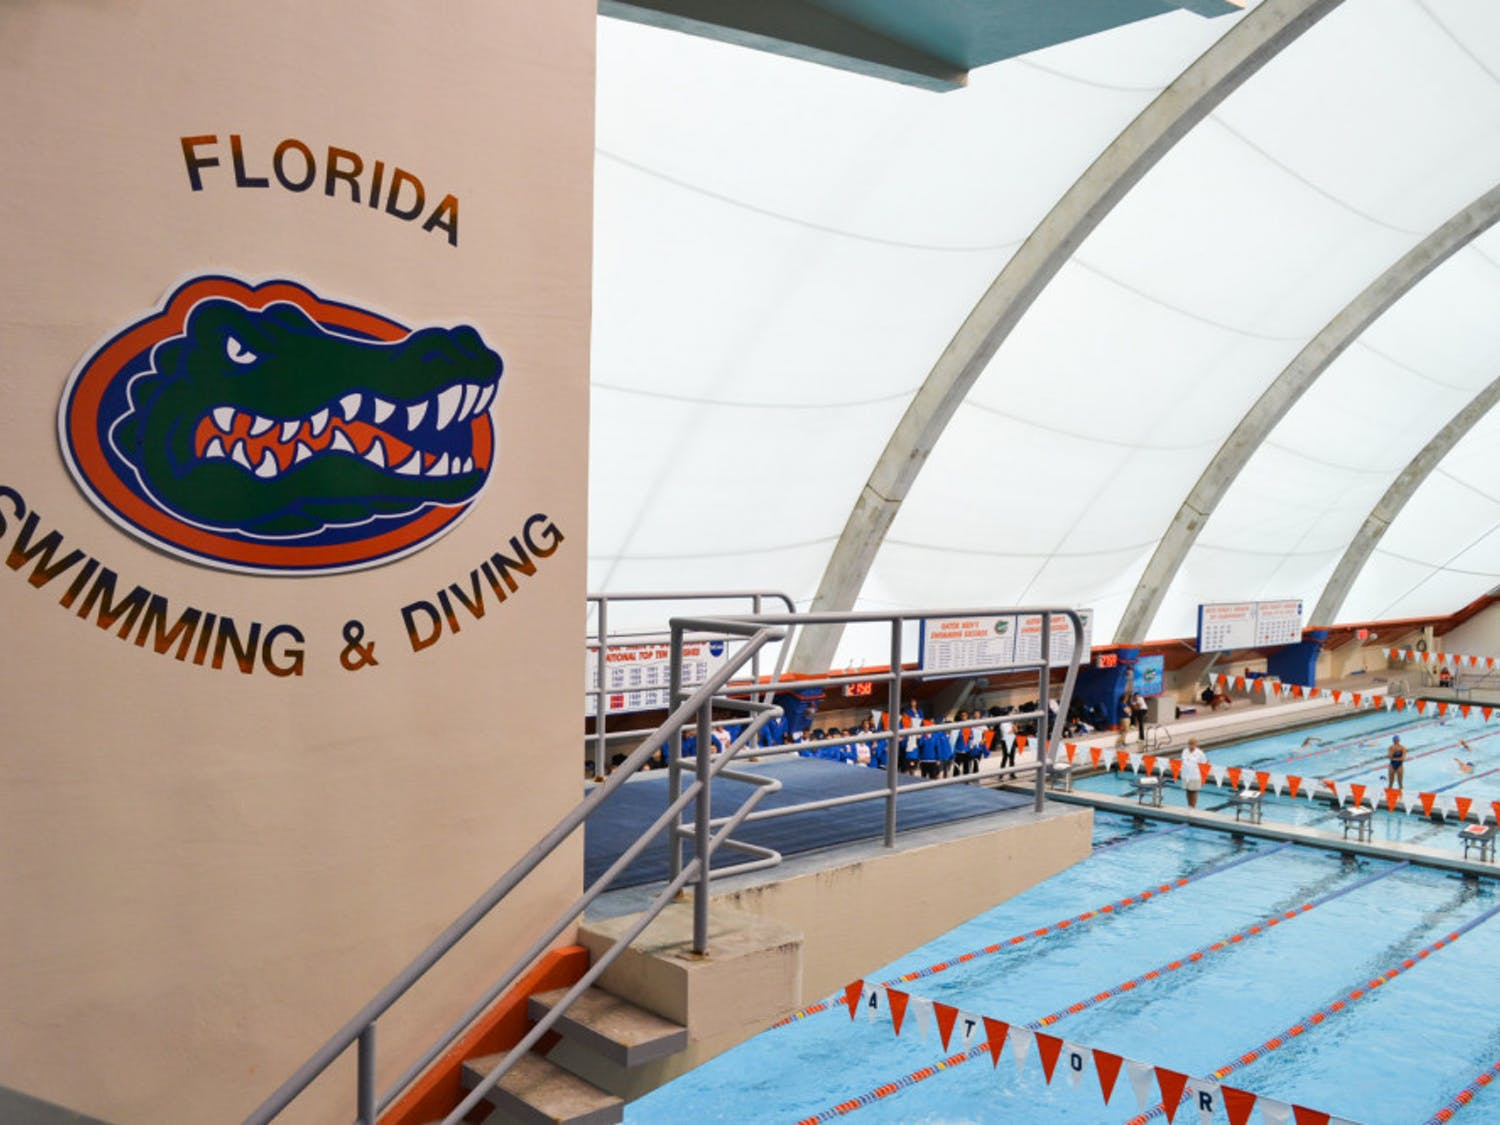 Florida's men's and women's diving teams had three top-five finishes and two top-ten finishes on Day 1 of the Auburn Invitational.